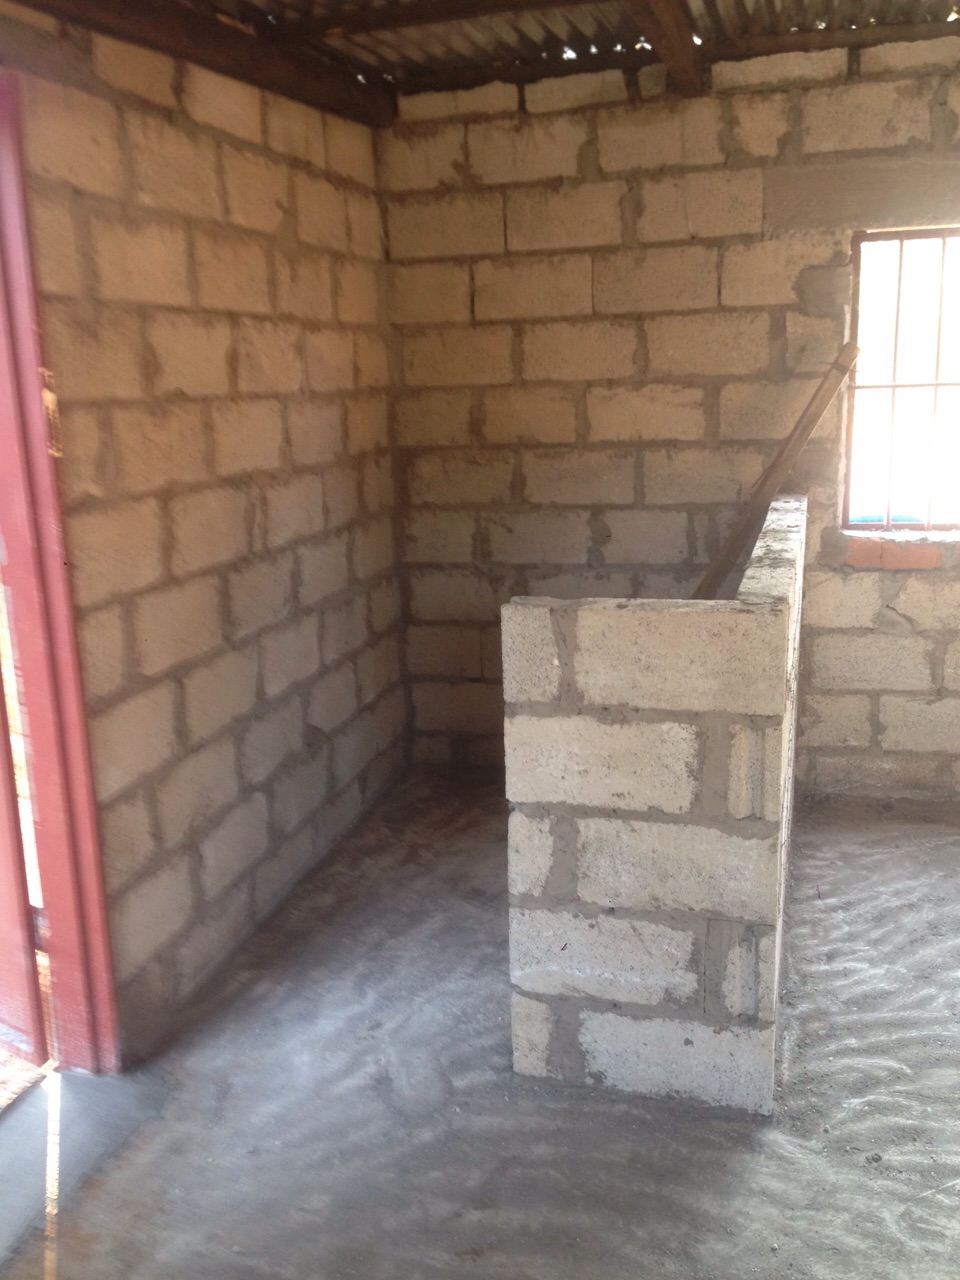 The storage area inside the chicken house